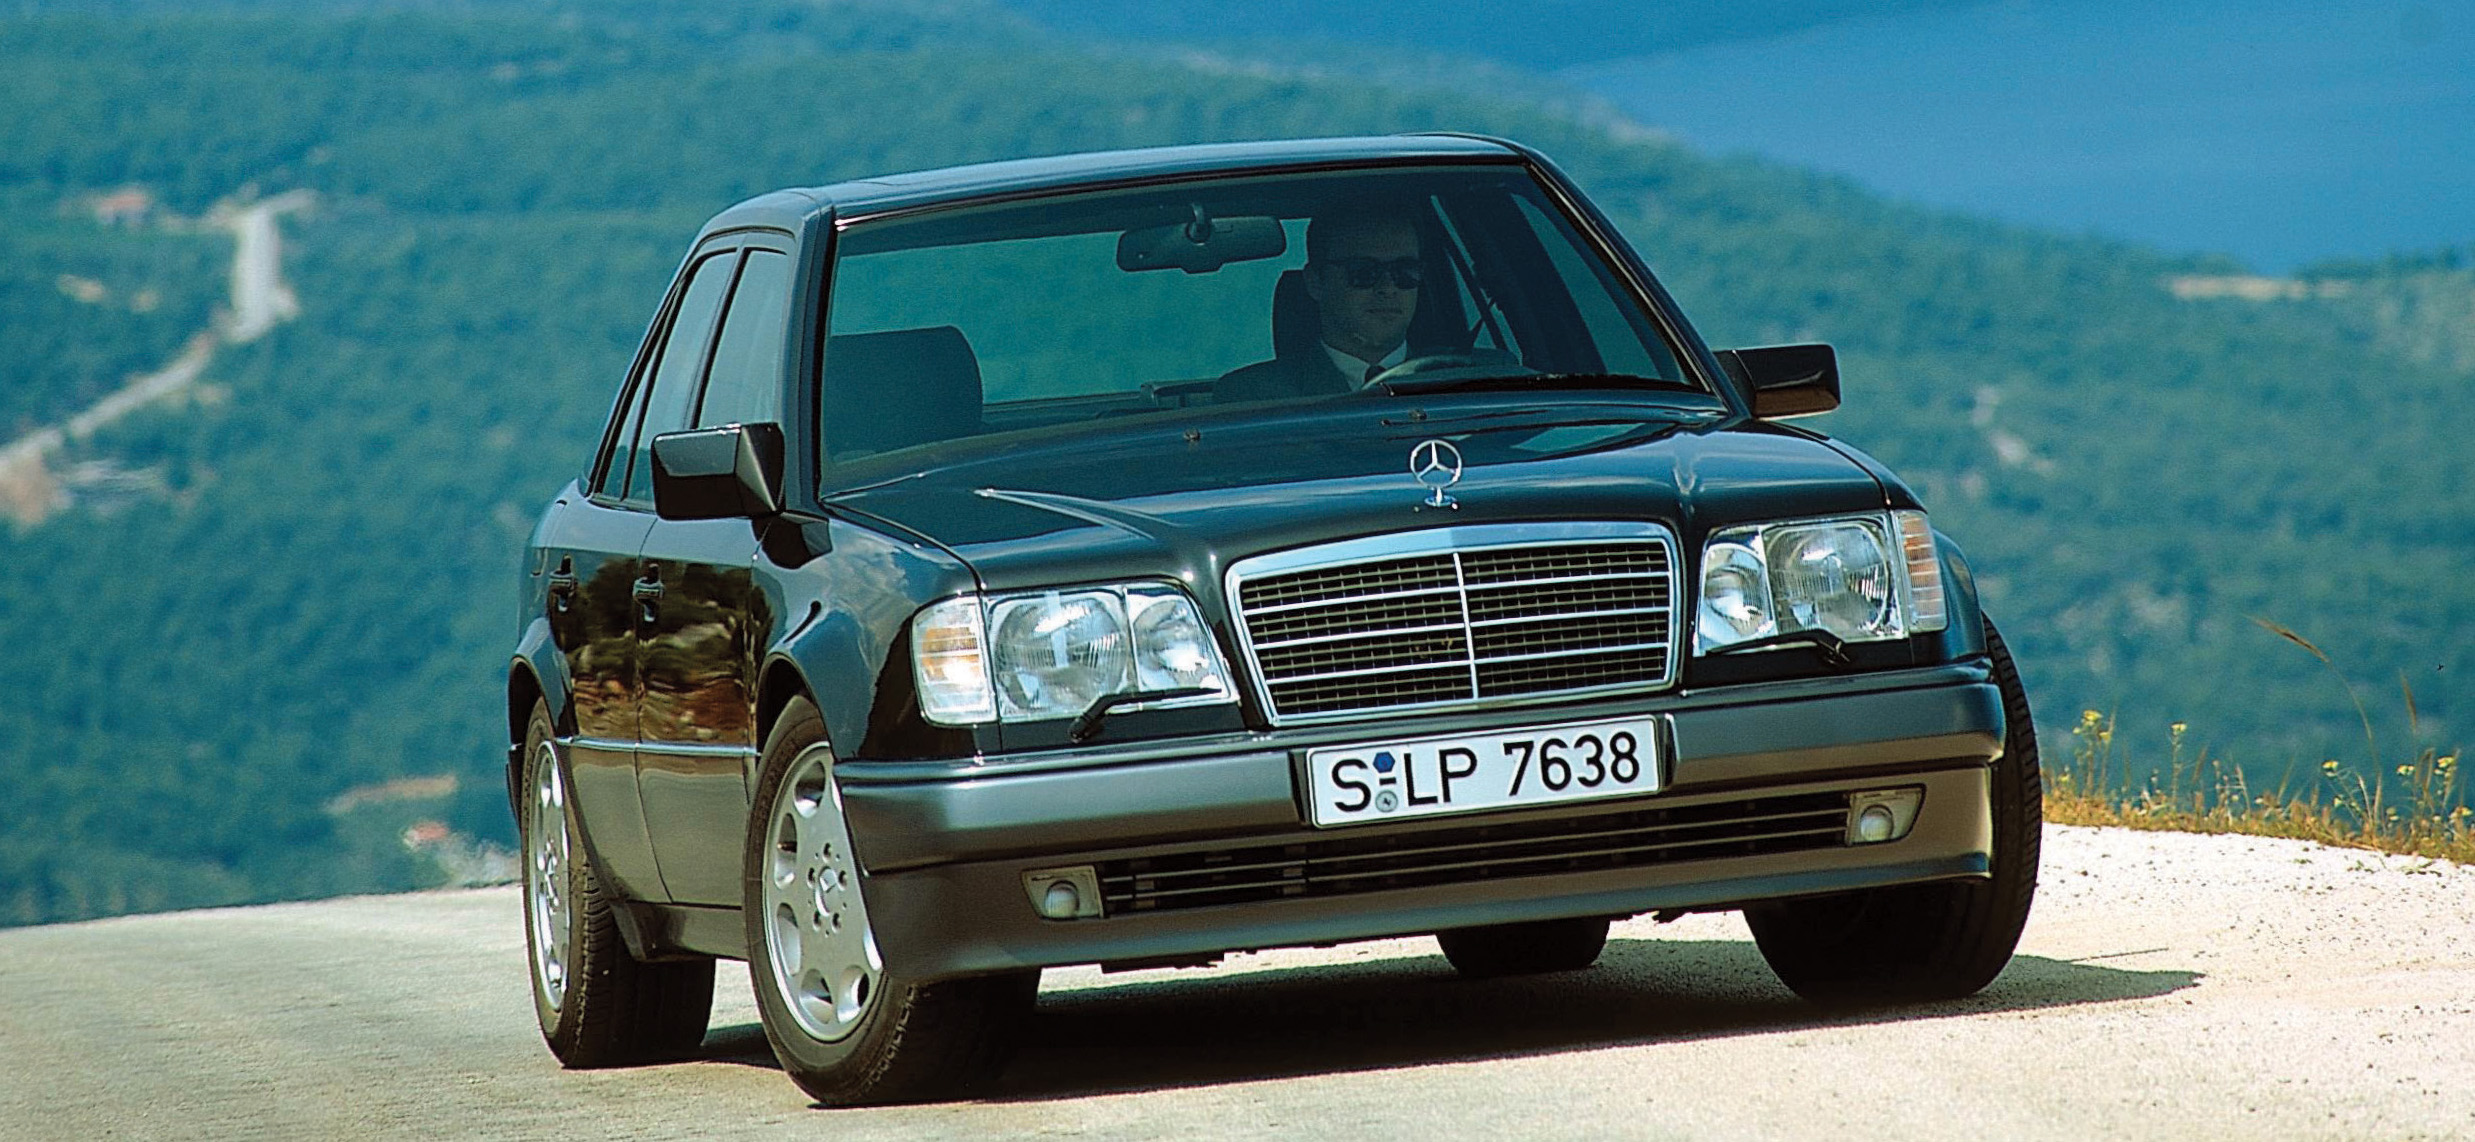 Mercedes Benz 500 E Like A Drug Articles Grassroots Motorsports W124 Wiring Harness Part Number Apr 5 2018 Posted In Buyers Guides From The May 2017 Issue Never Miss An Article